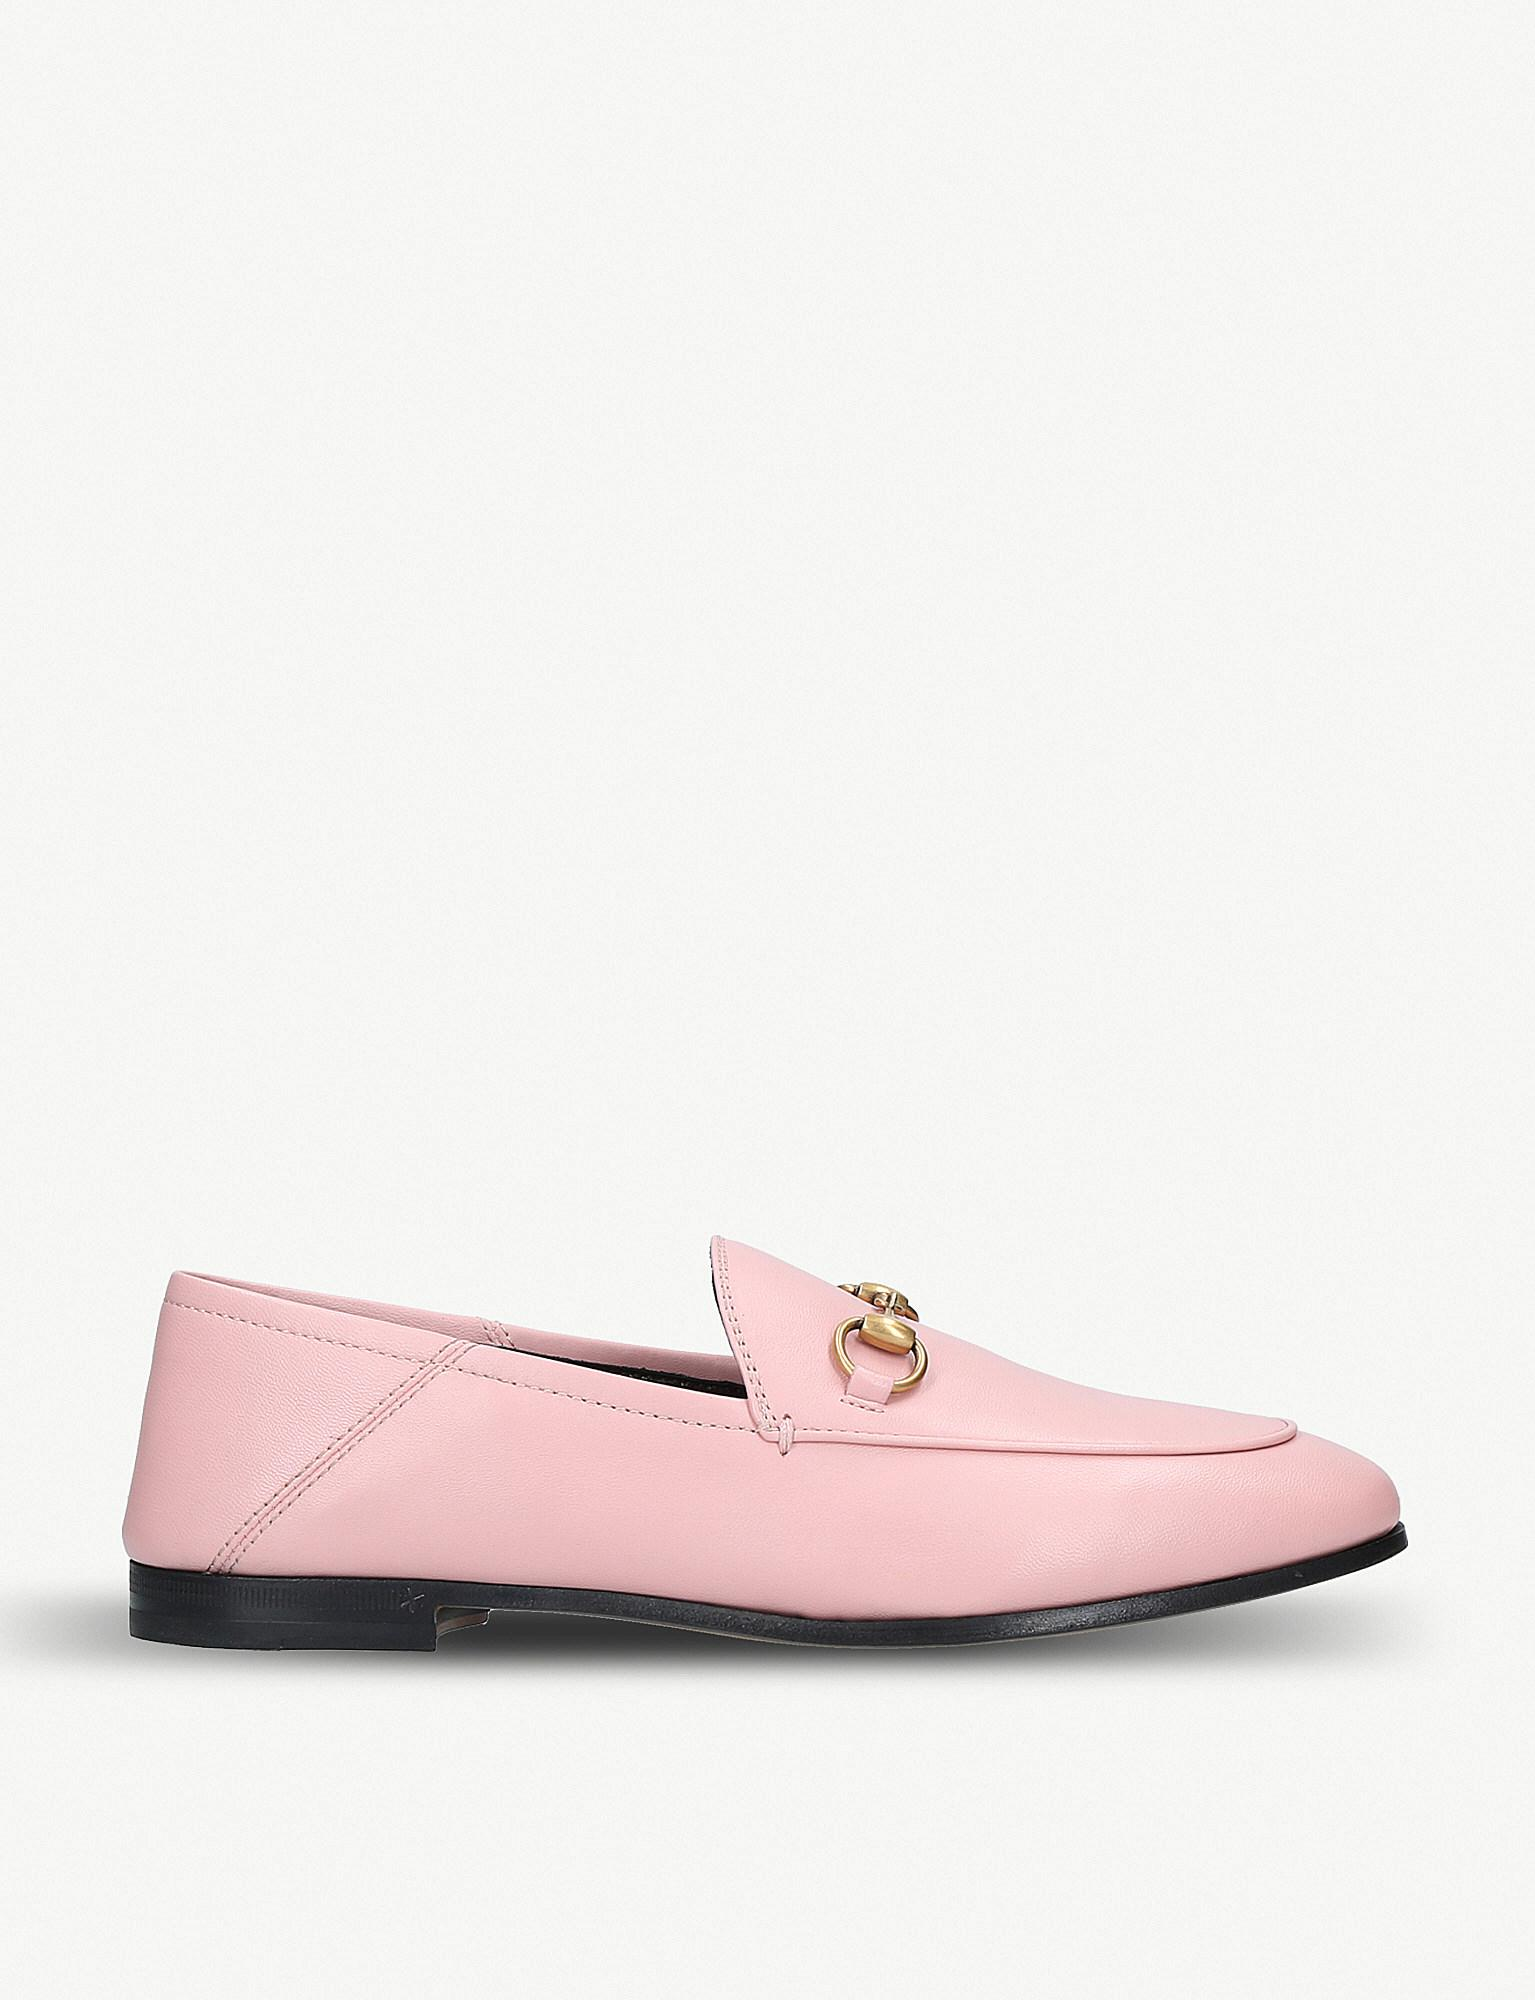 6a618193114 Lyst - Gucci Pink Crushback Brixton Loafers in Pink - Save ...